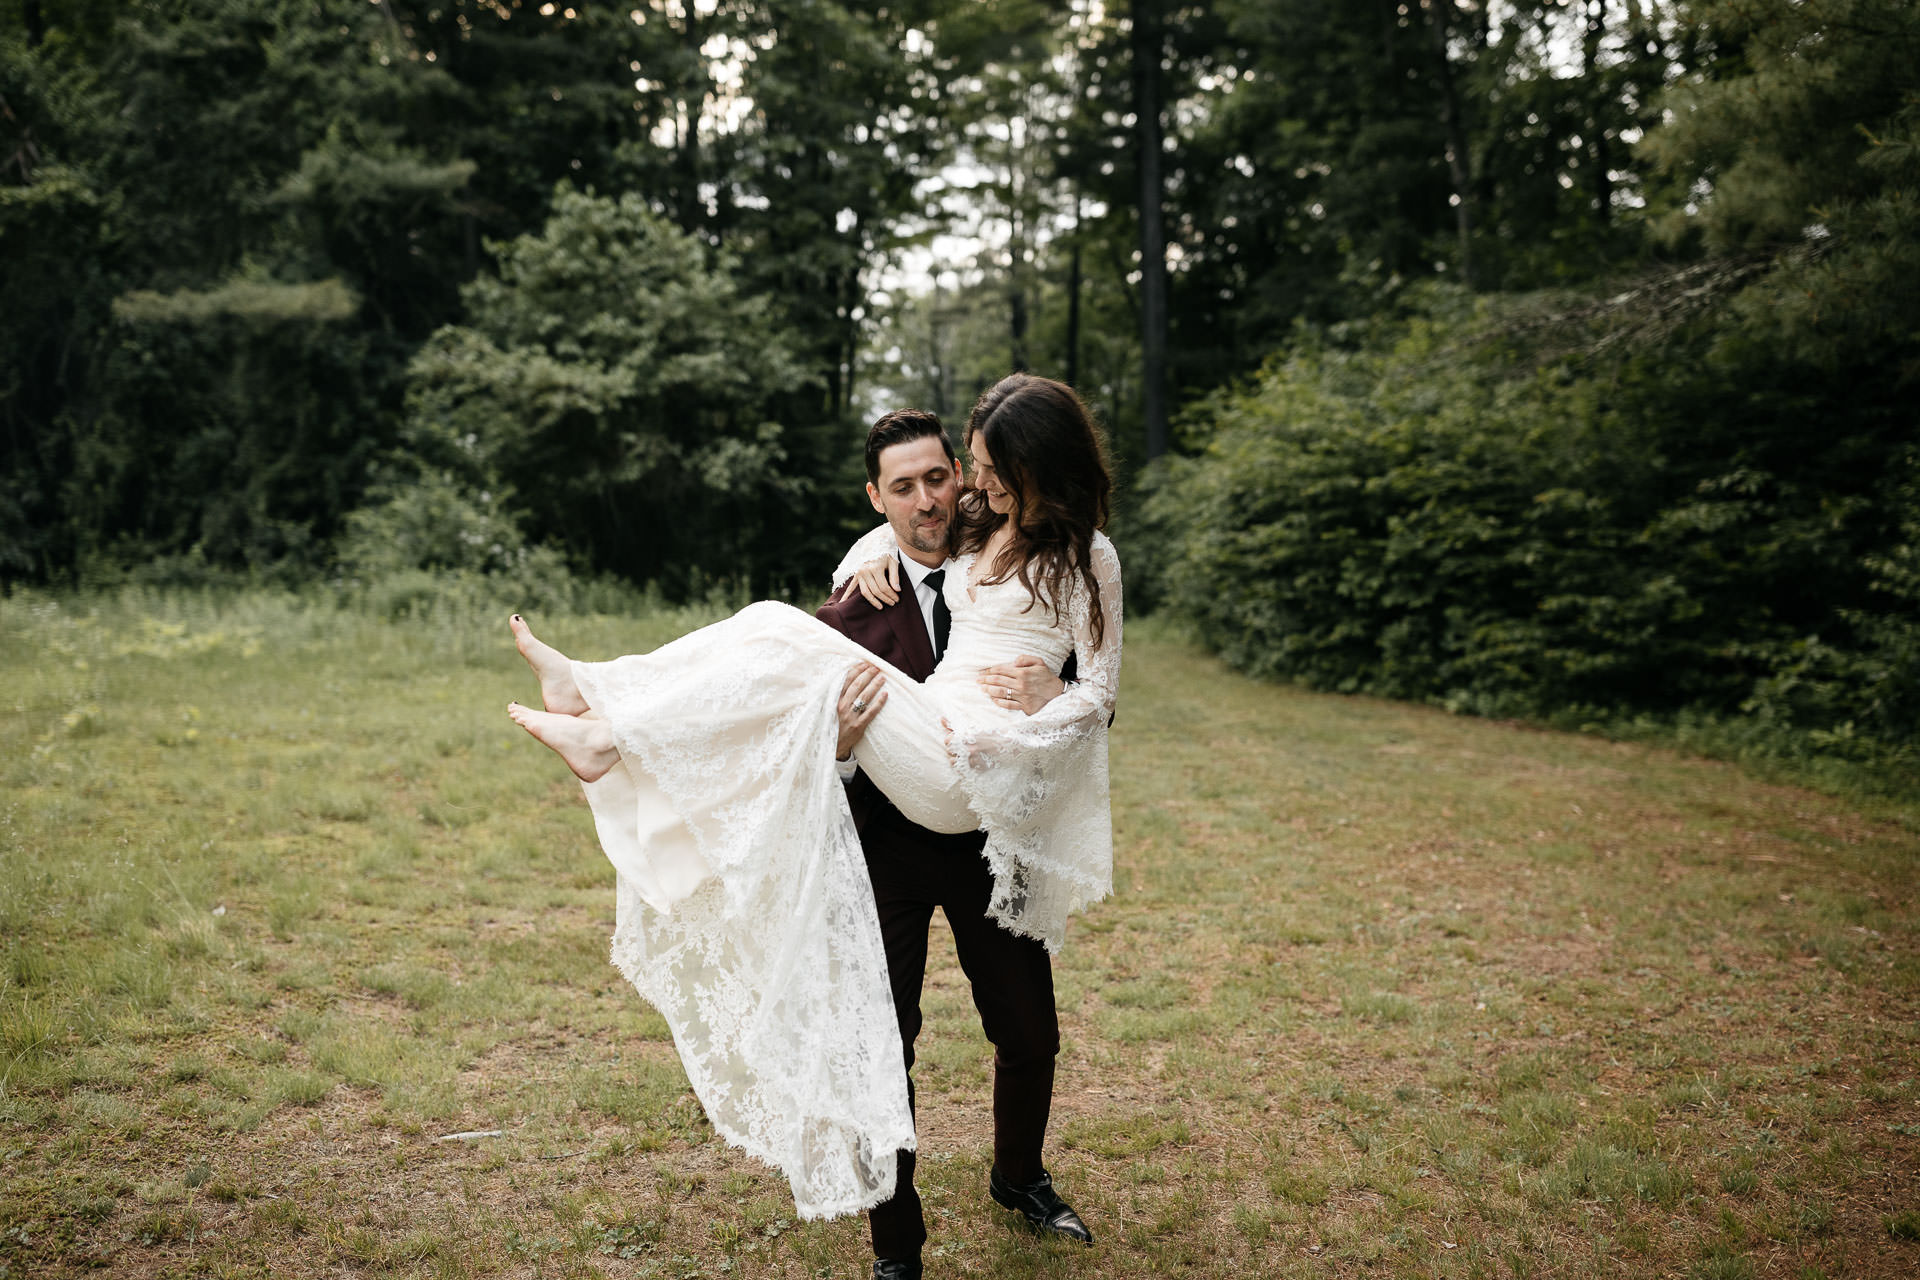 Rachel & David Boho Catskills wedding  at Foxfire Moutain House by Jean-Laurent Gaudy